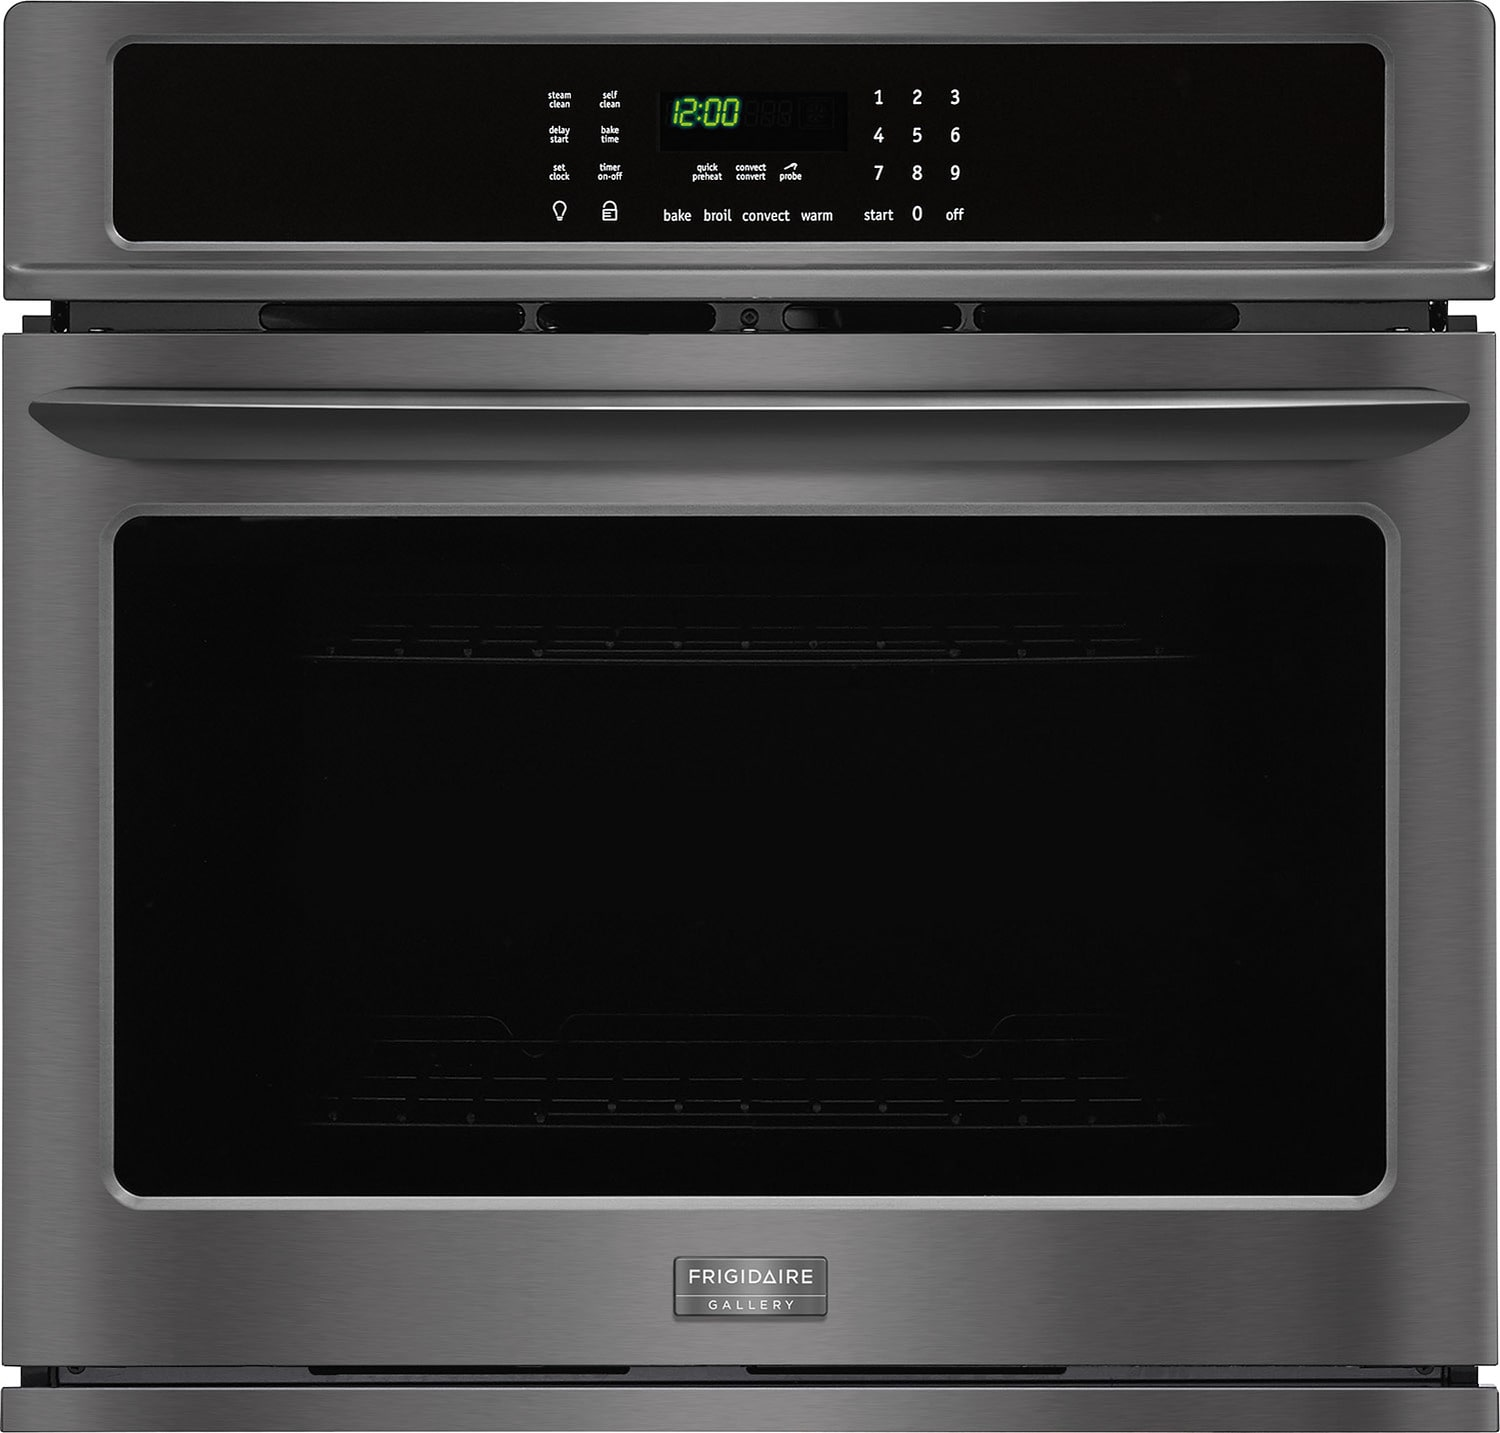 Frigidaire Gallery Black Stainless Steel True Convection Wall Oven (4.6 Cu. Ft.) - FGEW3065PD